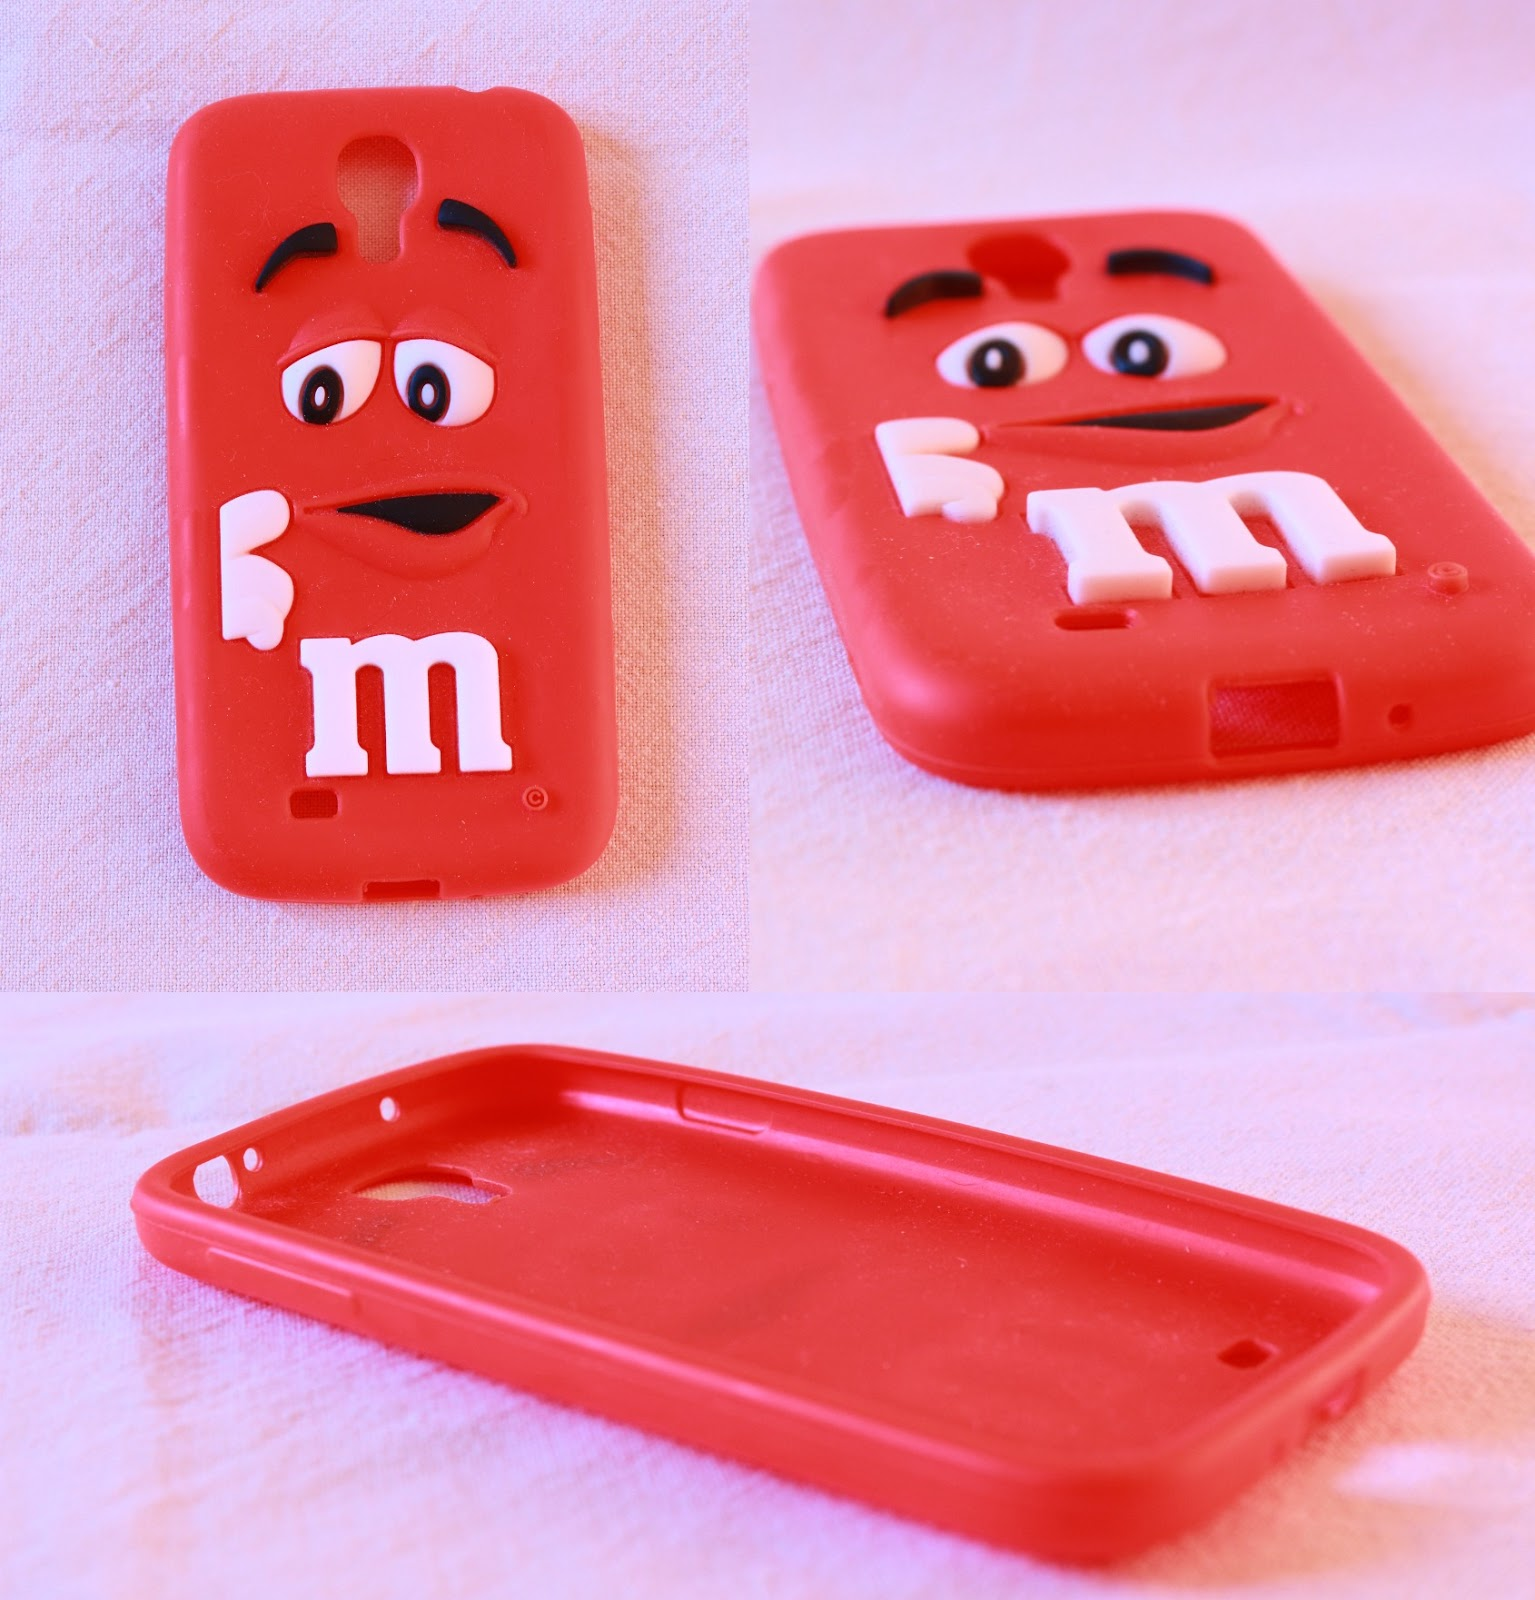 coque m&m's rouge samsung galxy s4